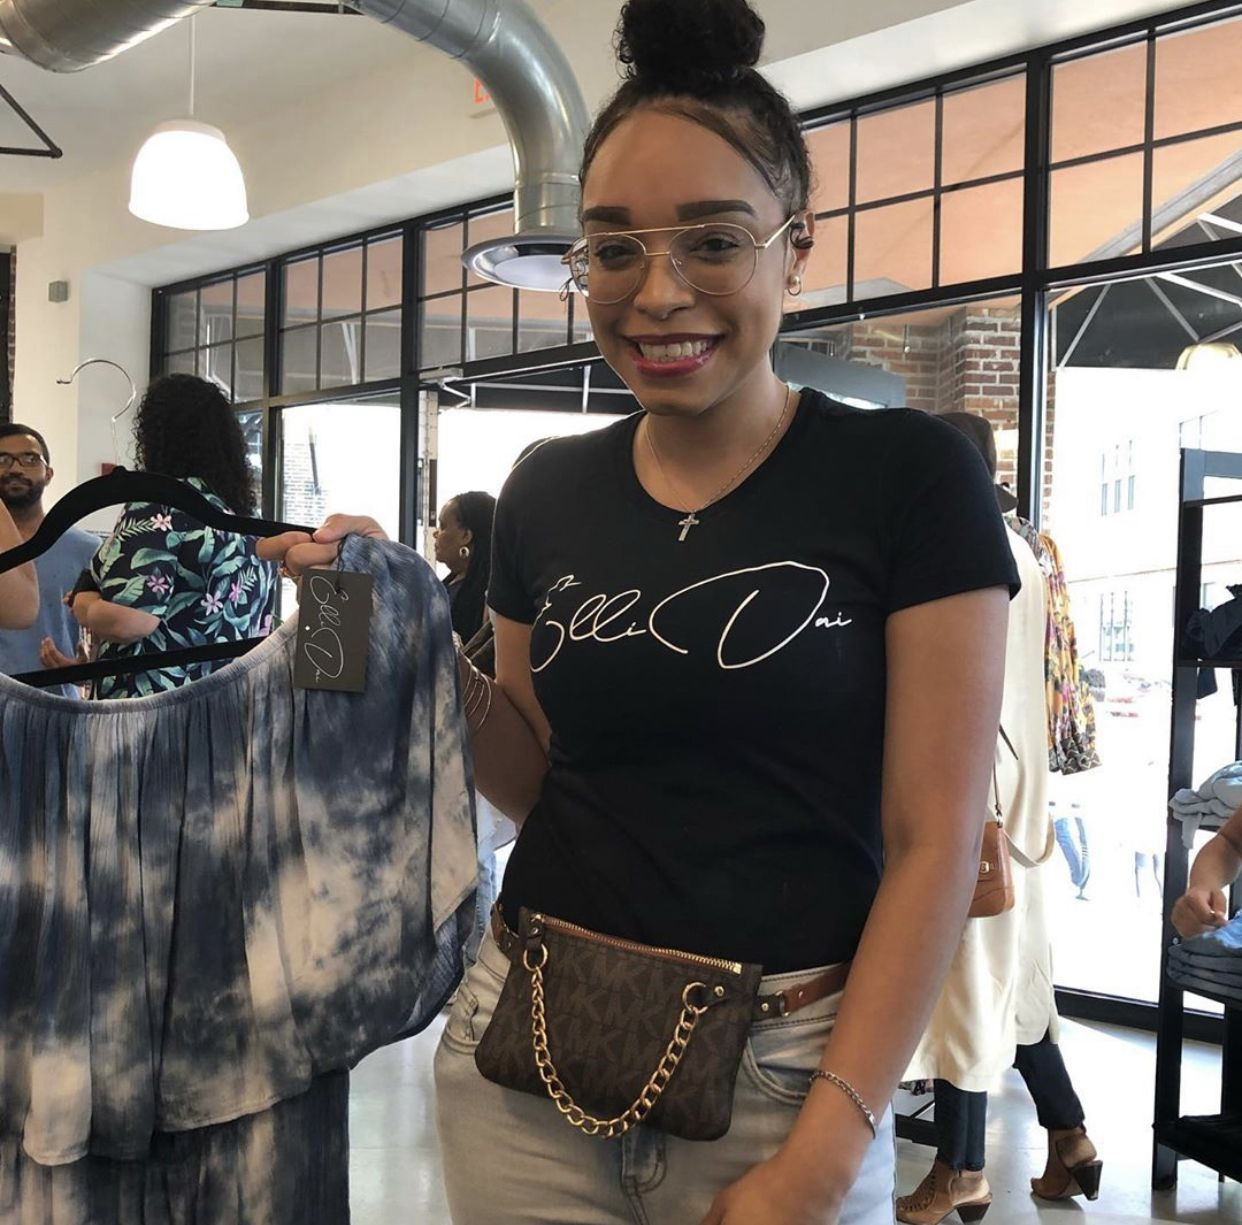 Customer Review in 2020 Fashion, Boho me, Style